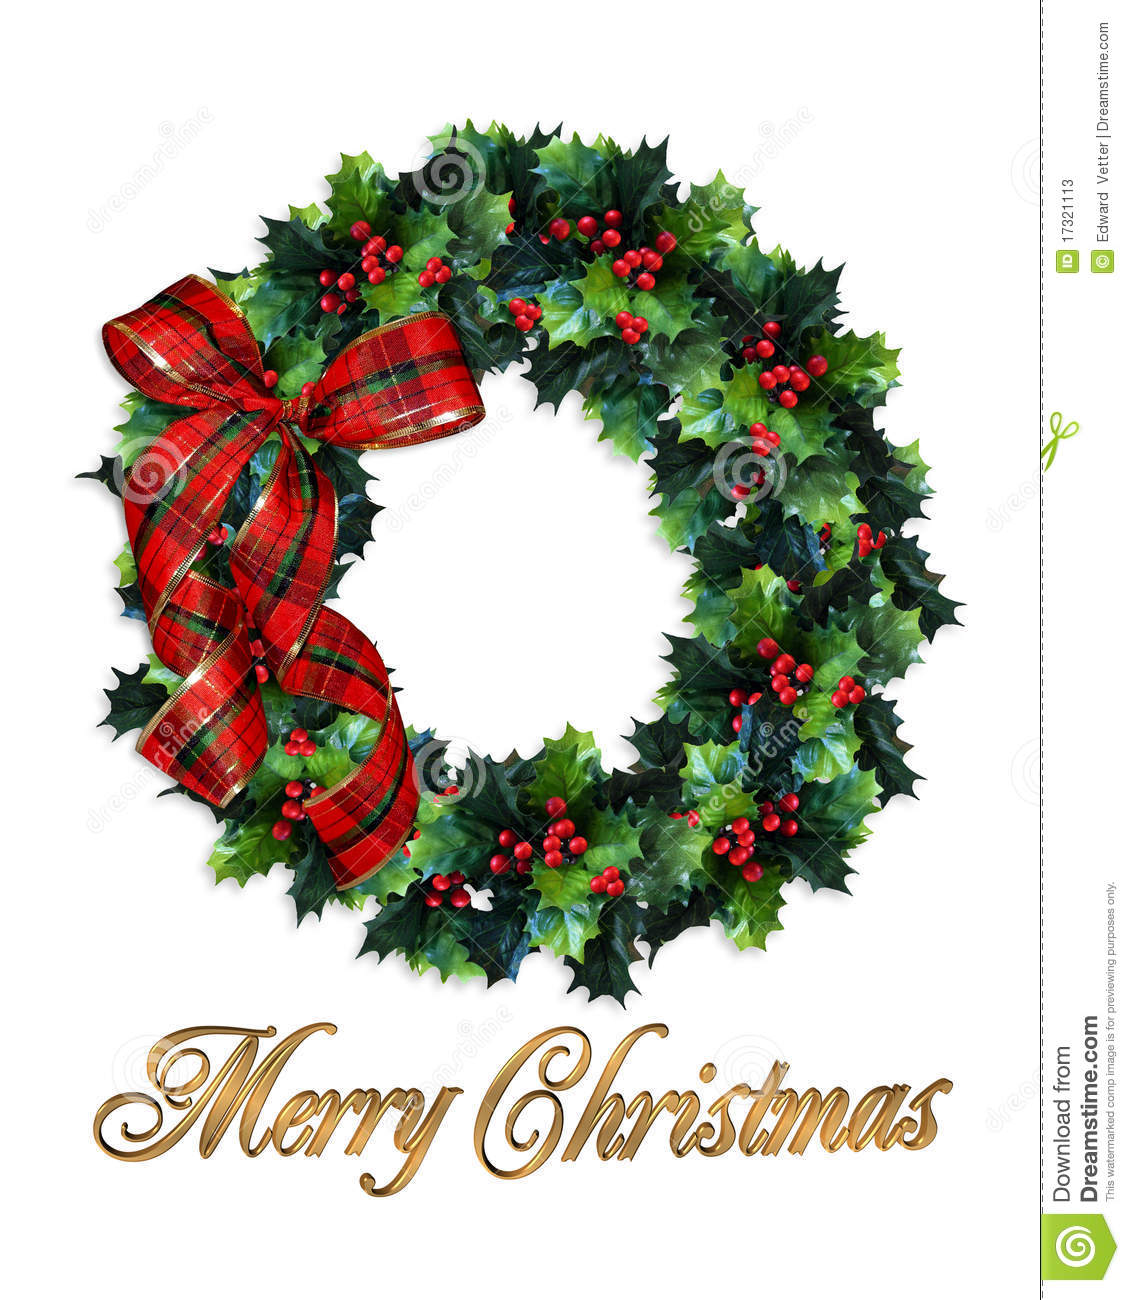 Merry Christmas Wreath Holly Stock Illustration